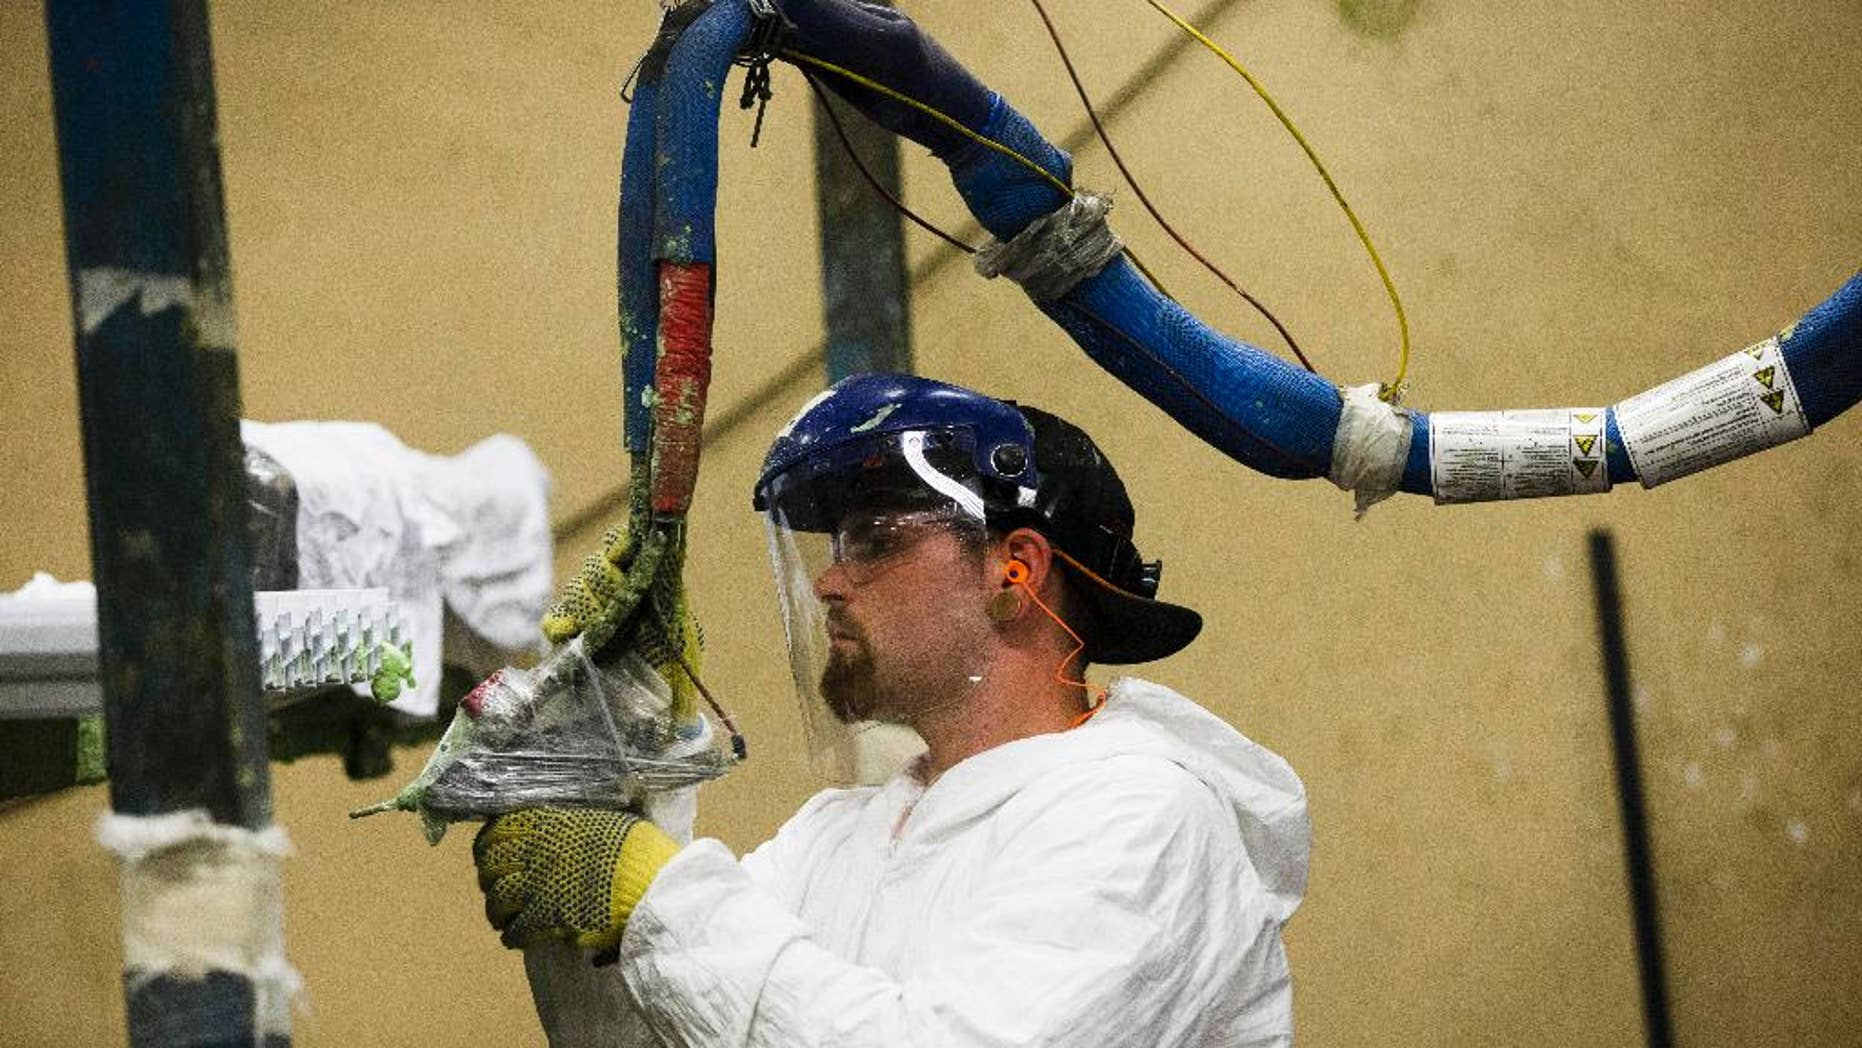 FILE - In this Aug. 7, 2014 photo, a worker assembles construction supplies at Northeast Building Products in Philadelphia. The Commerce Department releases factory orders for July on Wednesday, Sept. 2, 2015. (AP Photo/Matt Rourke, File)